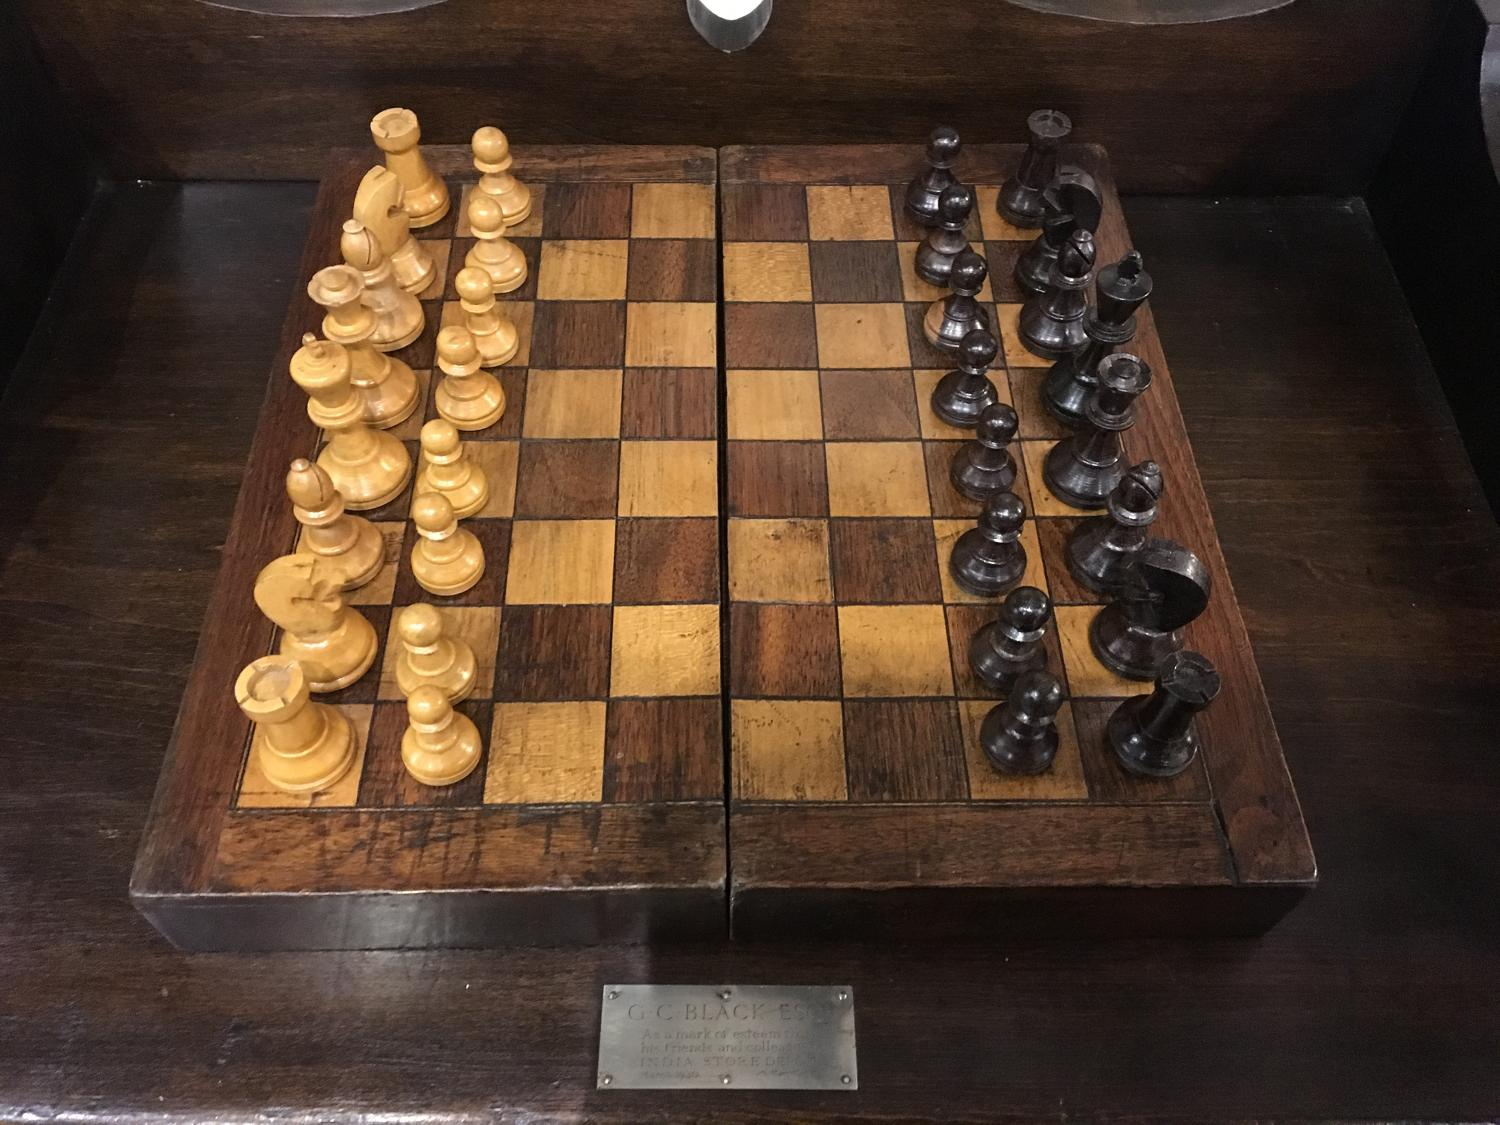 Victorian Chess Board/Box with weighted chess pieces